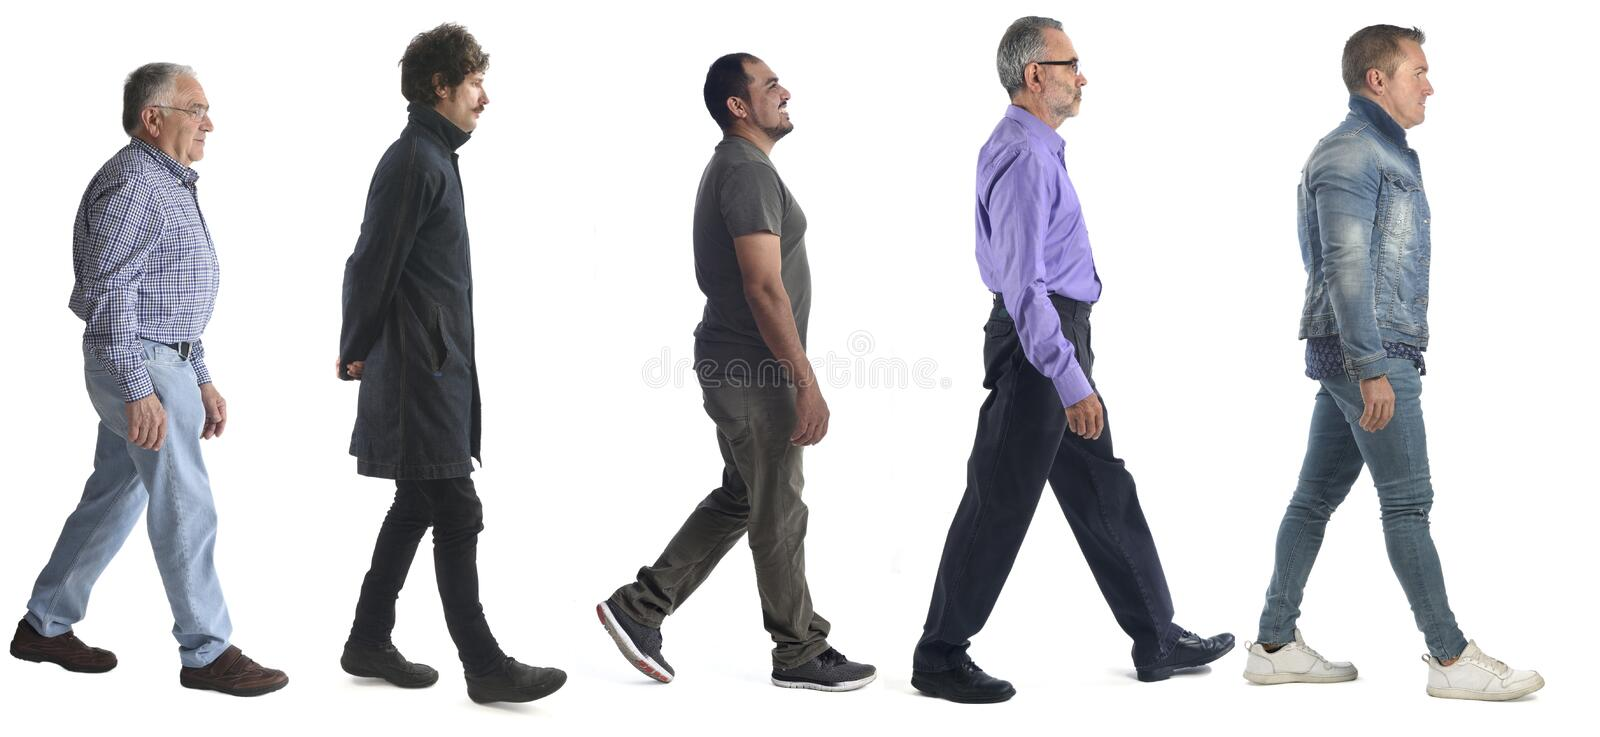 Group of men walking on white stock photos